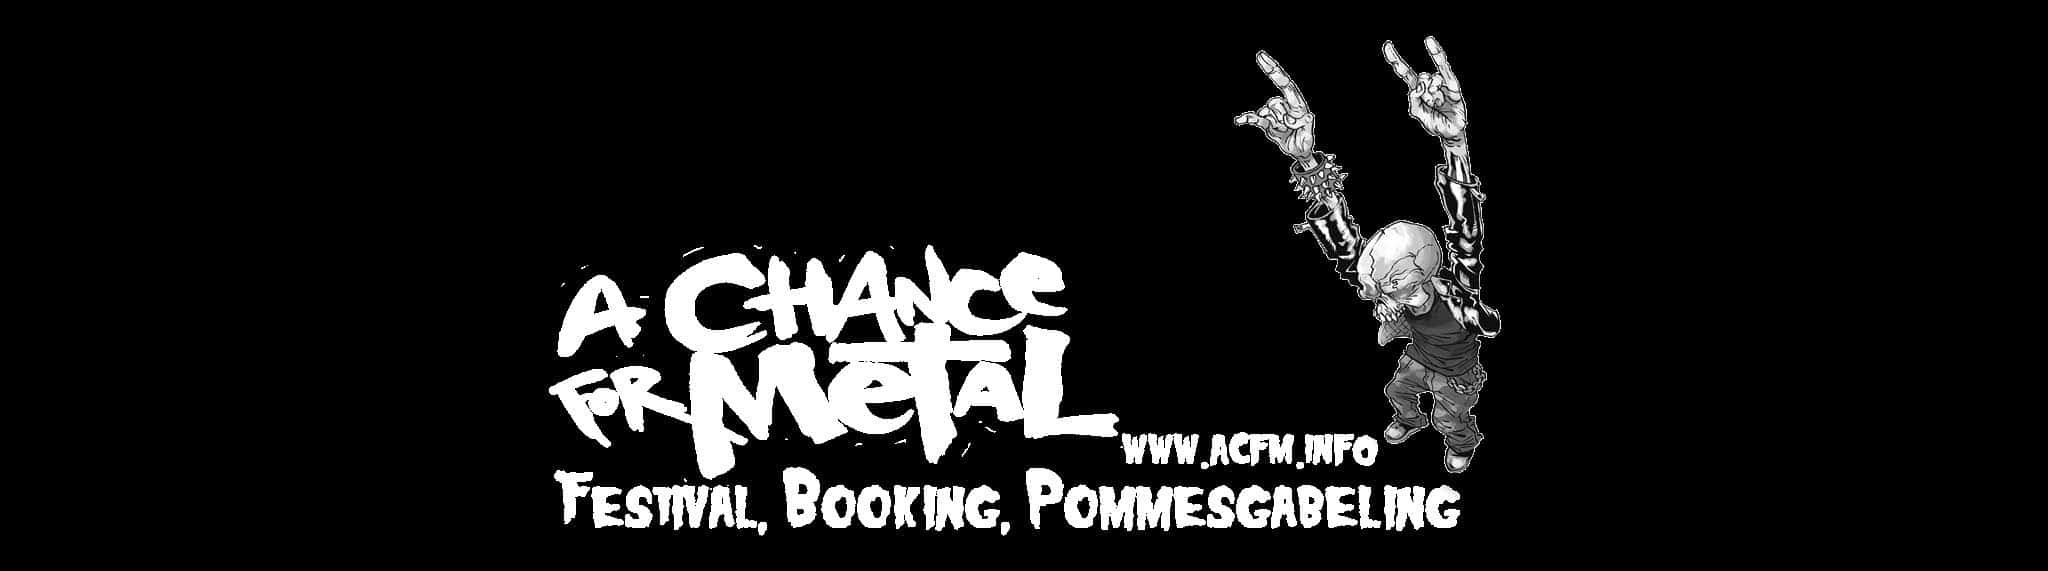 A CHANCE FOR METAL